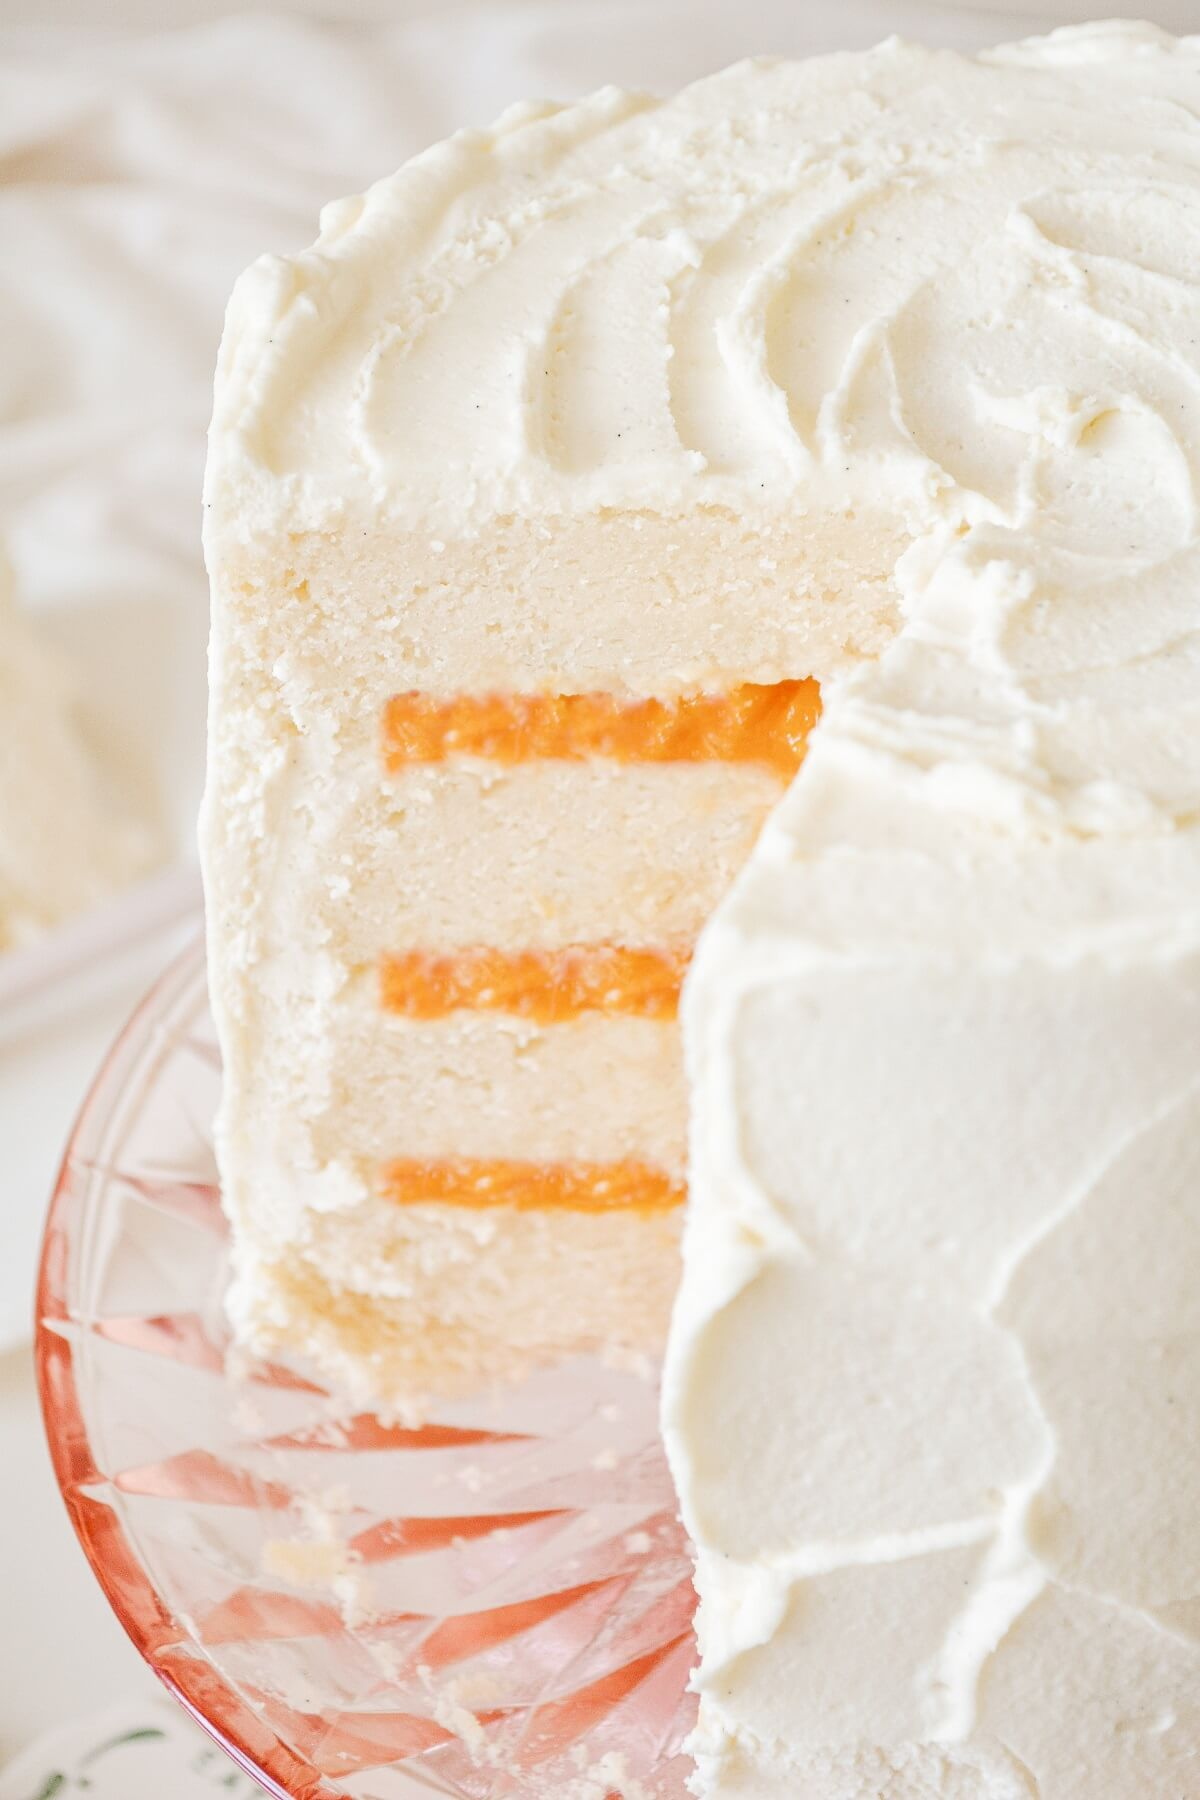 Peaches and cream cake, with one slice cut.